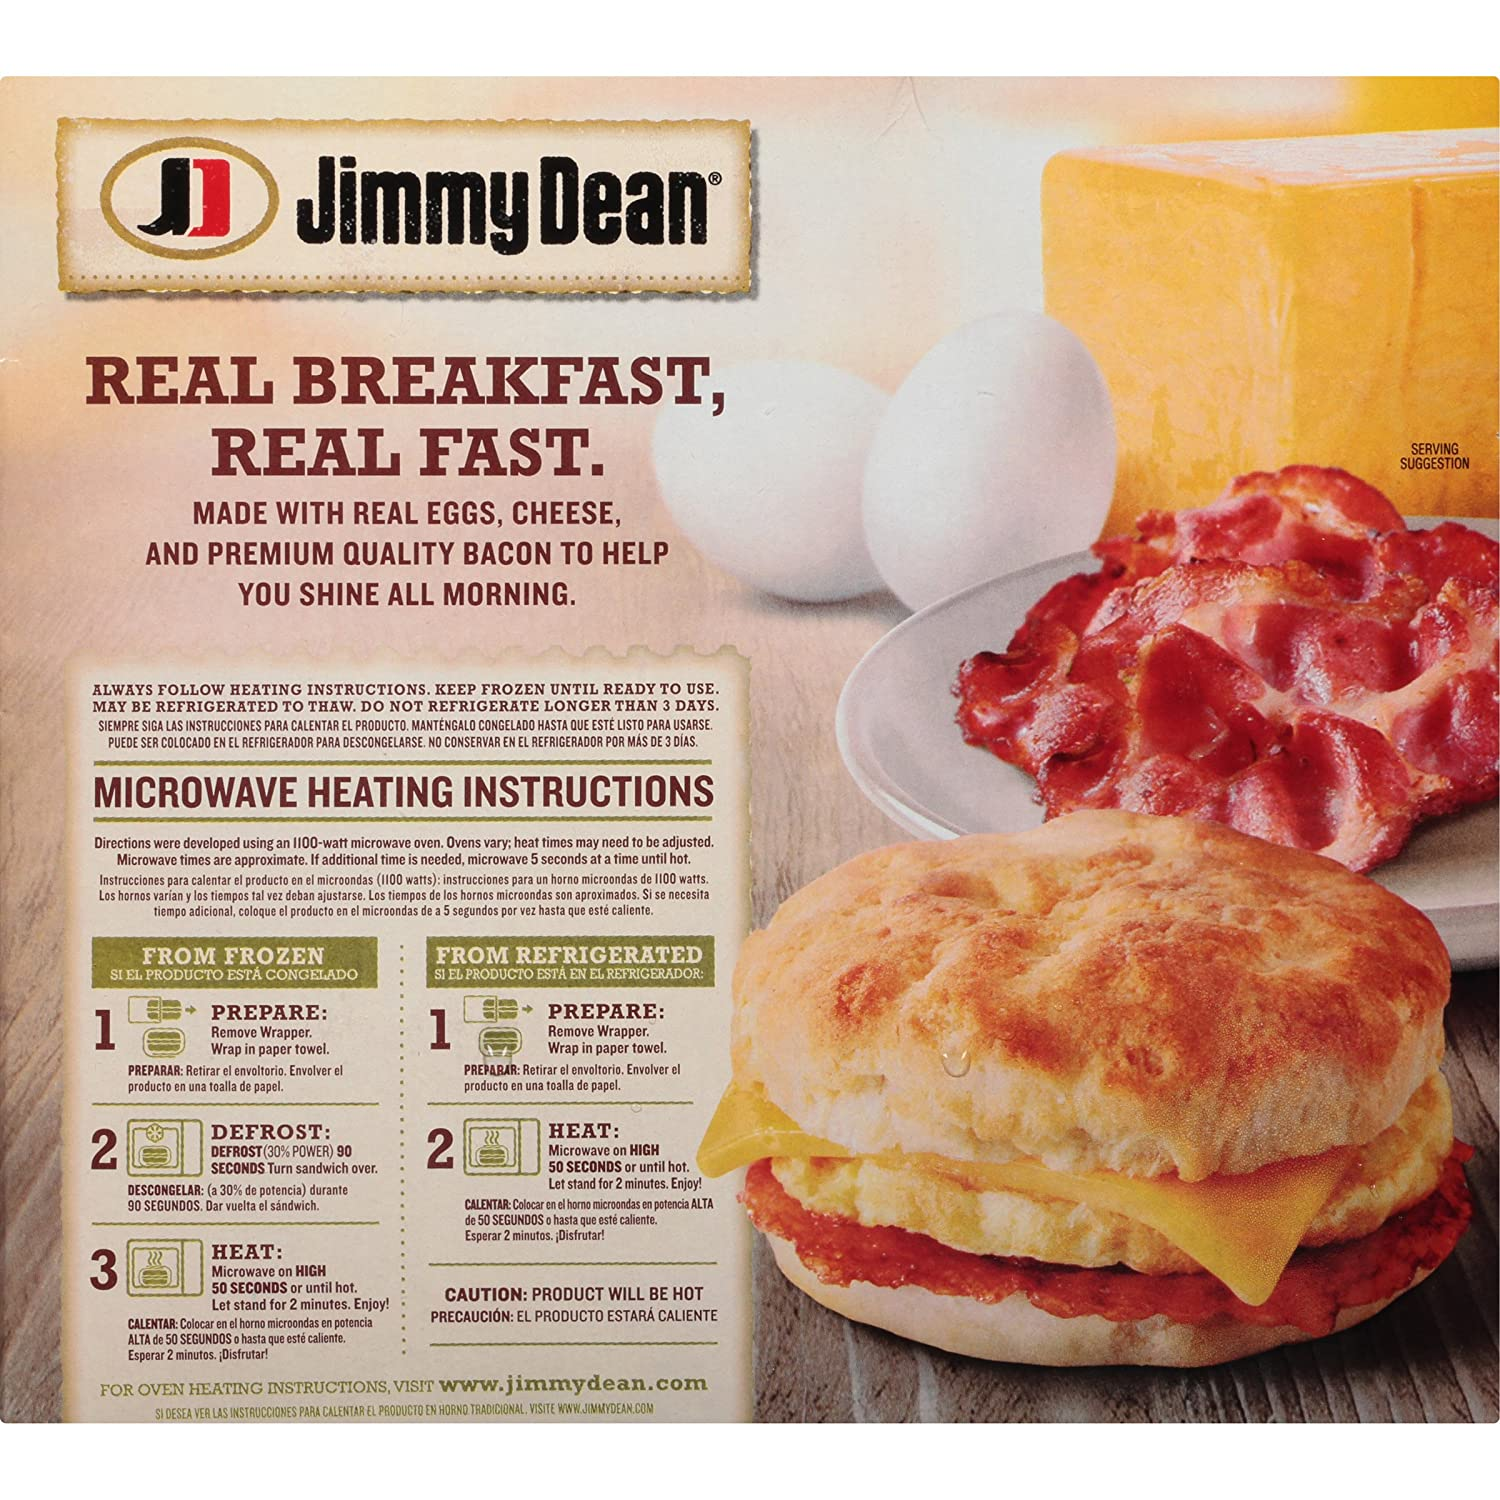 Jimmy Dean Bacon, Egg & Cheese Biscuit Sandwiches, 8 Count (Frozen): Amazon.com: Grocery & Gourmet Food